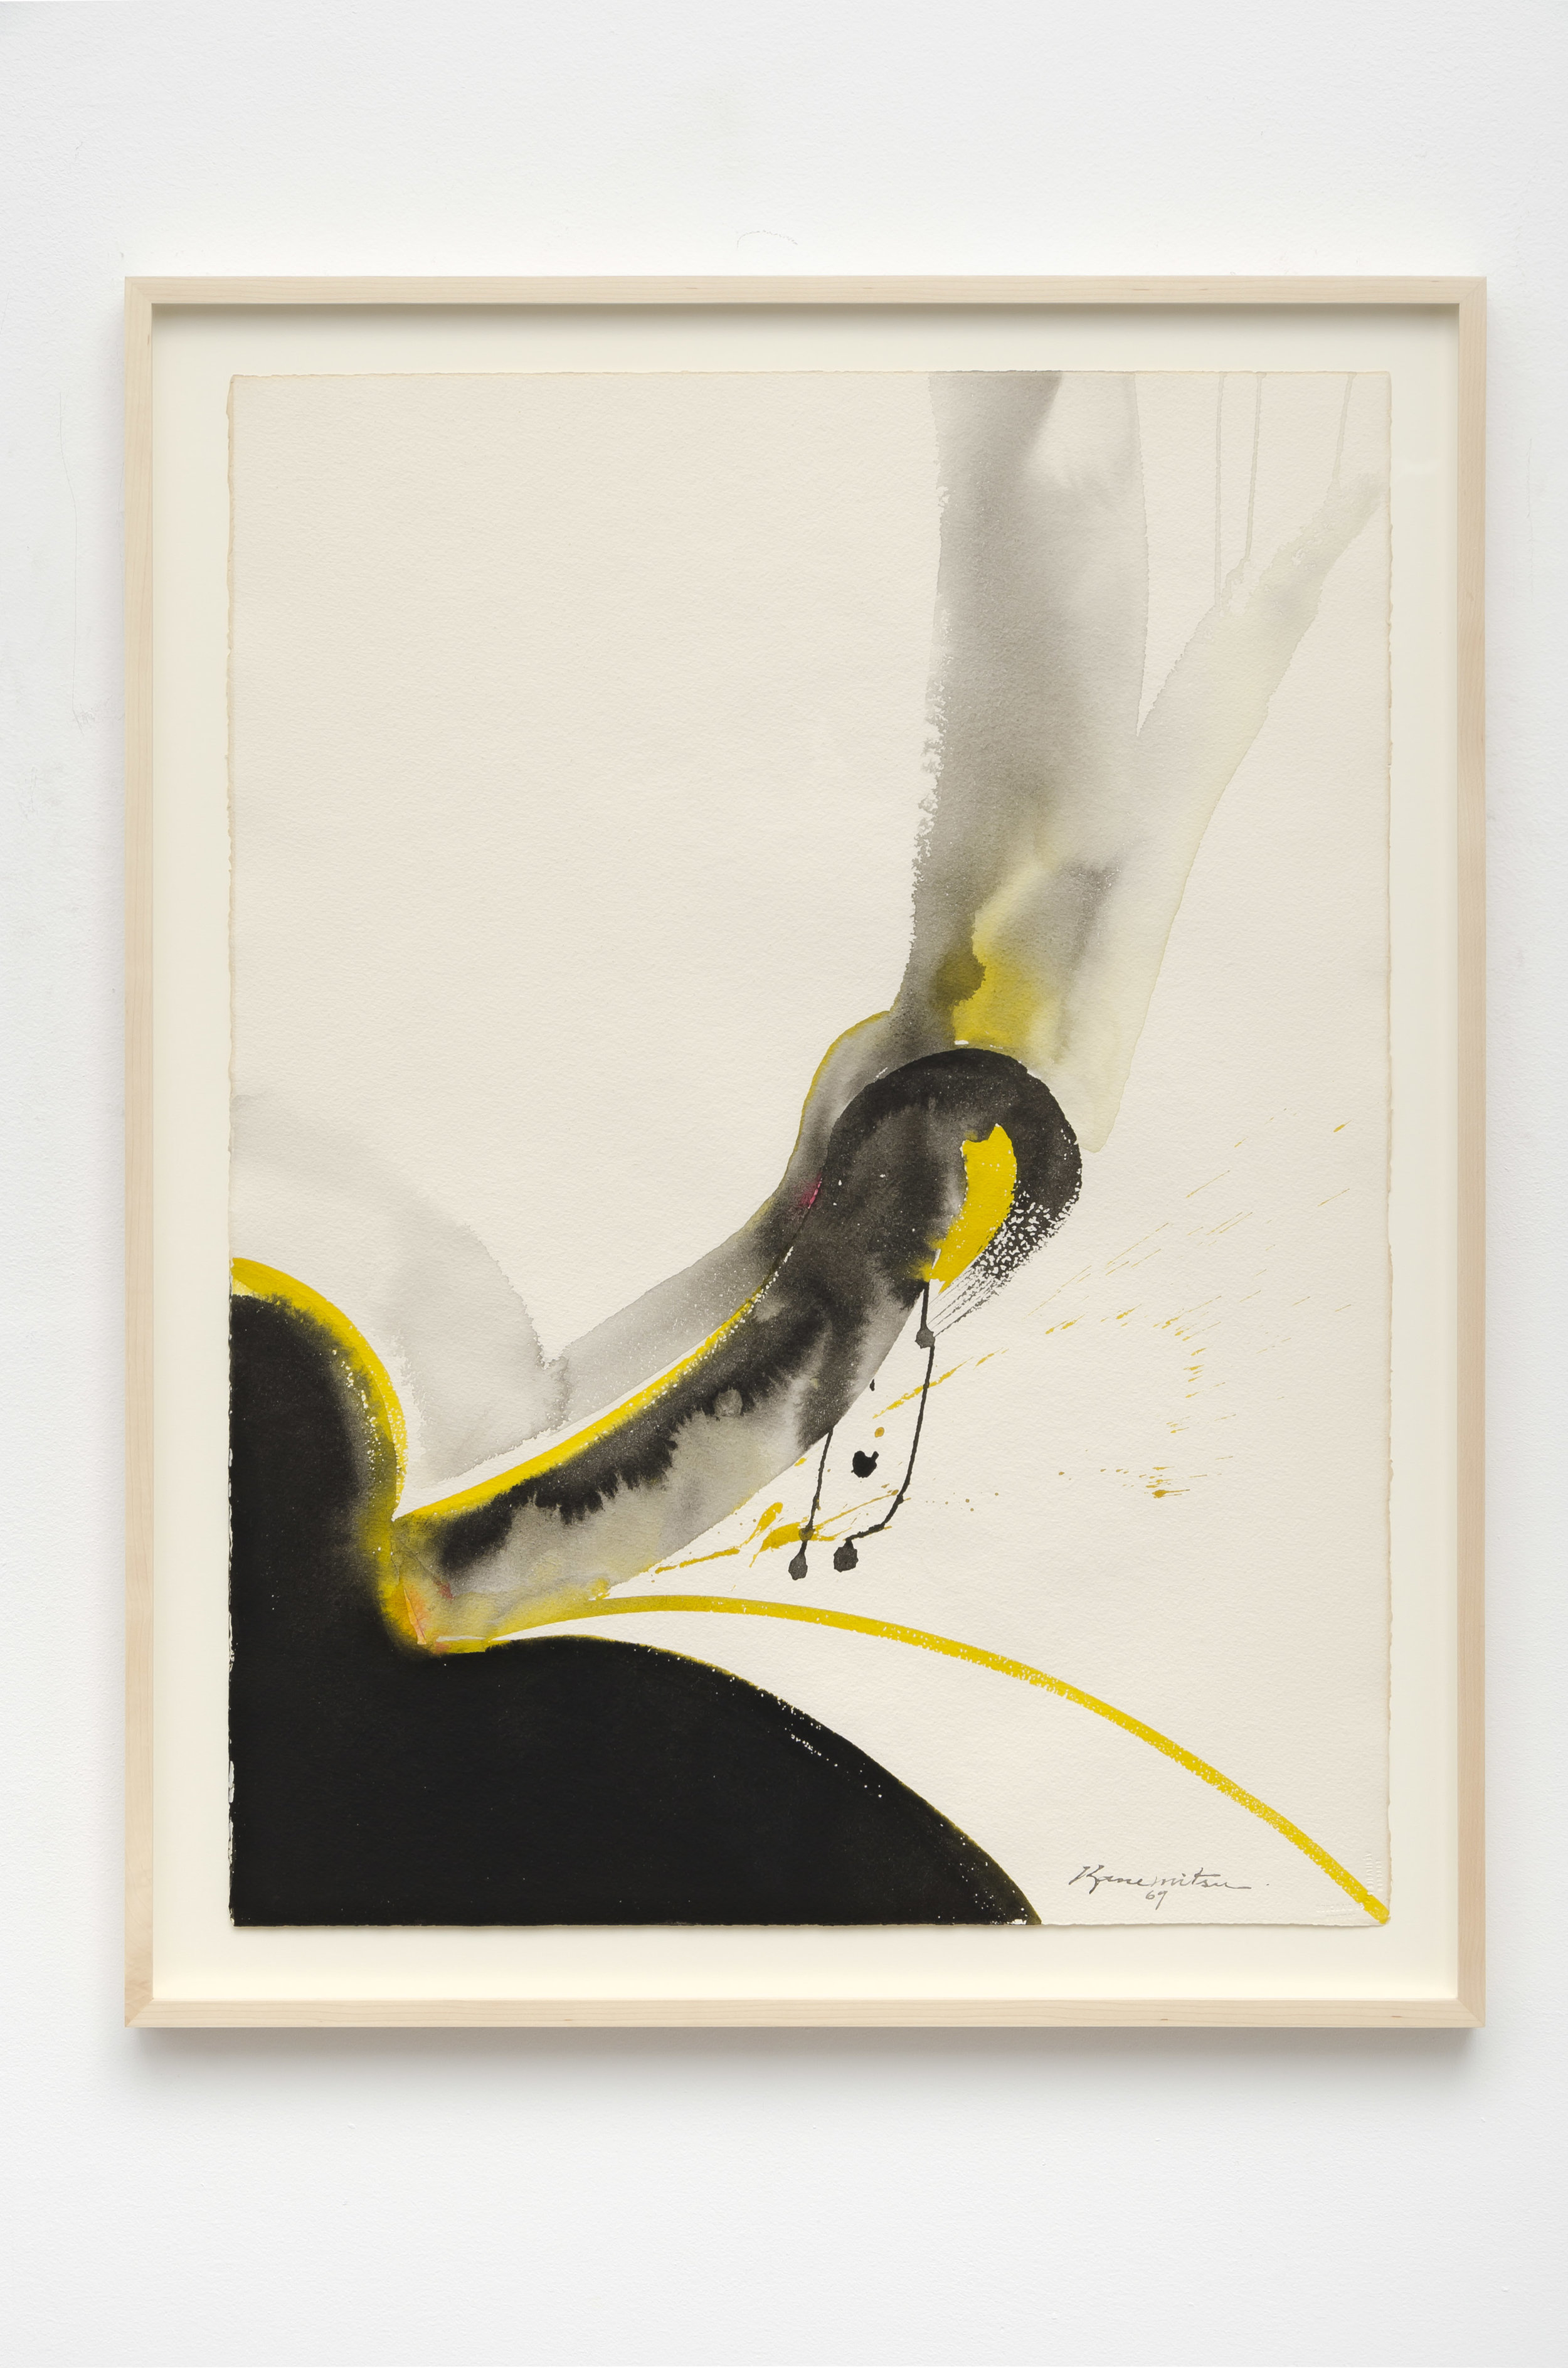 Untitled , 1969 sumi and watercolor on paper 33 1/2 x 25 5/8 inches; 85.1 x 65.1 centimeters